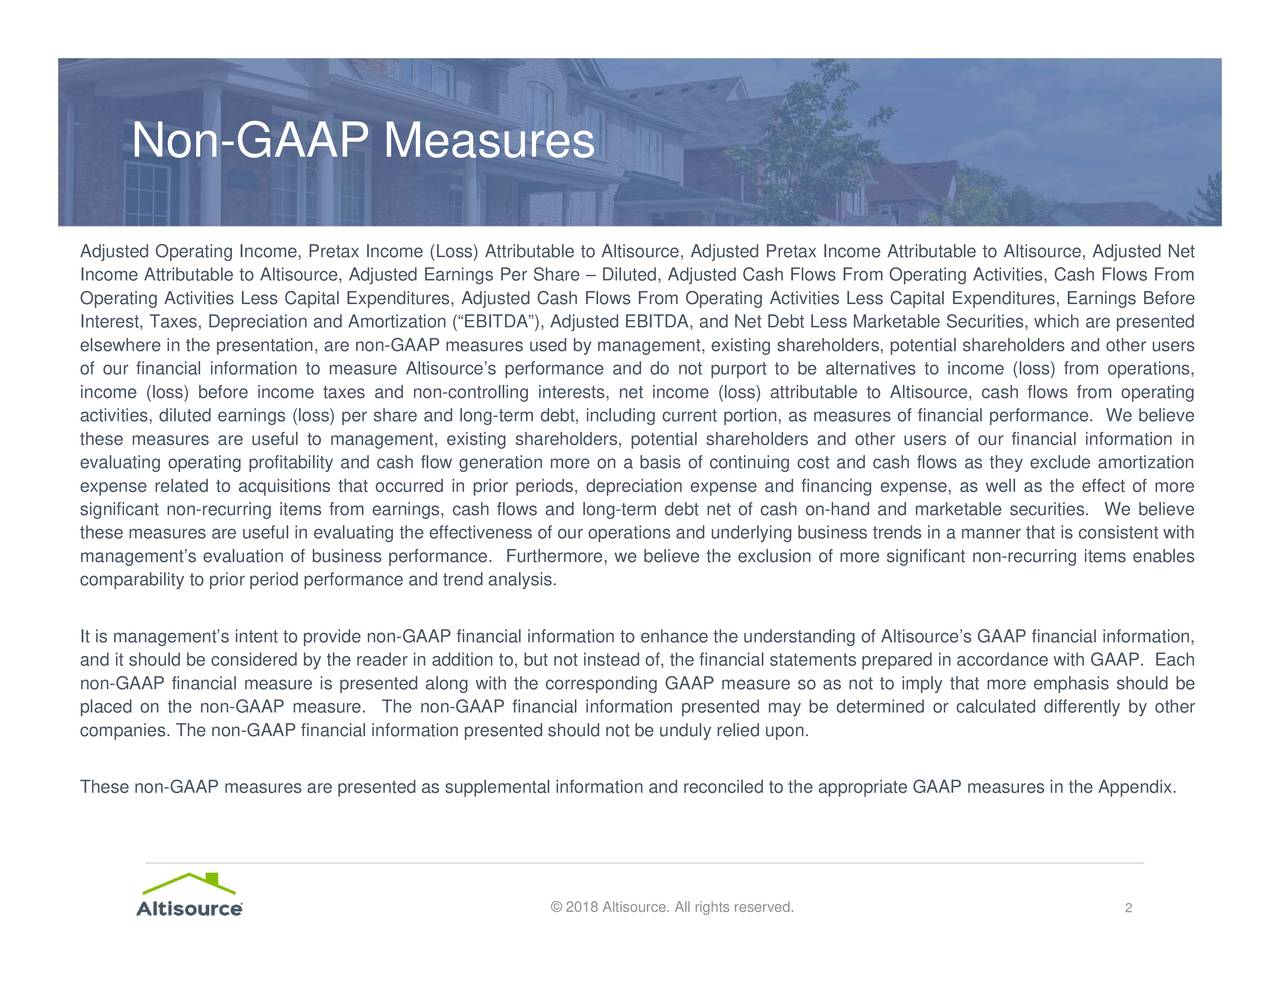 "ent, existing shareholders, potential shareholders and other usersrmined or calculated differently by other rom Operating Activities Less Capital Expenditures, Earnings Before ion and reconciled to the appropriate GAAP measures in the Appendix. © 2018 Altisource. All rights reserved. Non-GAAP Measures AdjIncempeneterbinnclicthAetPs)CaieiairnltniLm-utxfttntilsacrACr""stlnonstrrseaeyrh,iortsnaFotuabbitstm,itertaae"